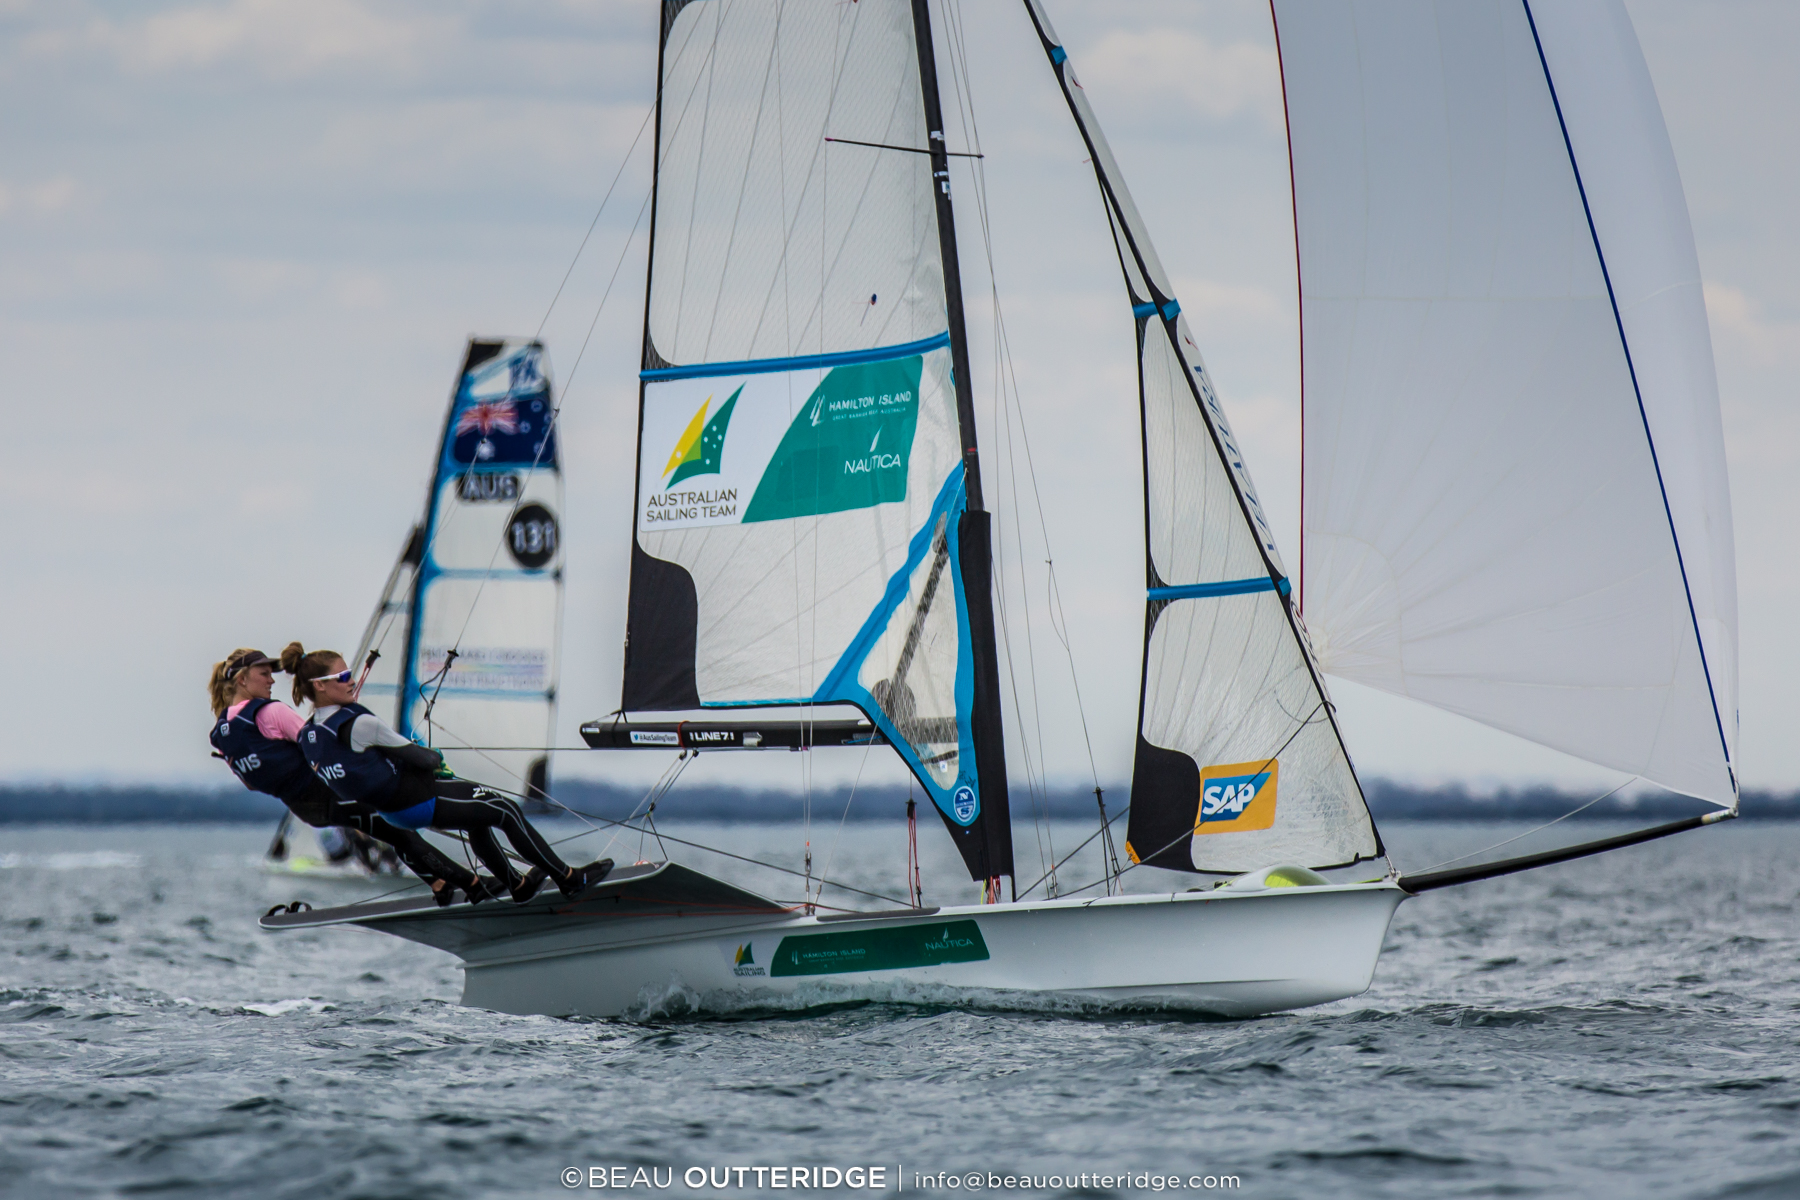 Tess Lloyd and Eliza Solly were the first placed all-women team in the 49erFX fleet. Photos: Beau Outteridge.